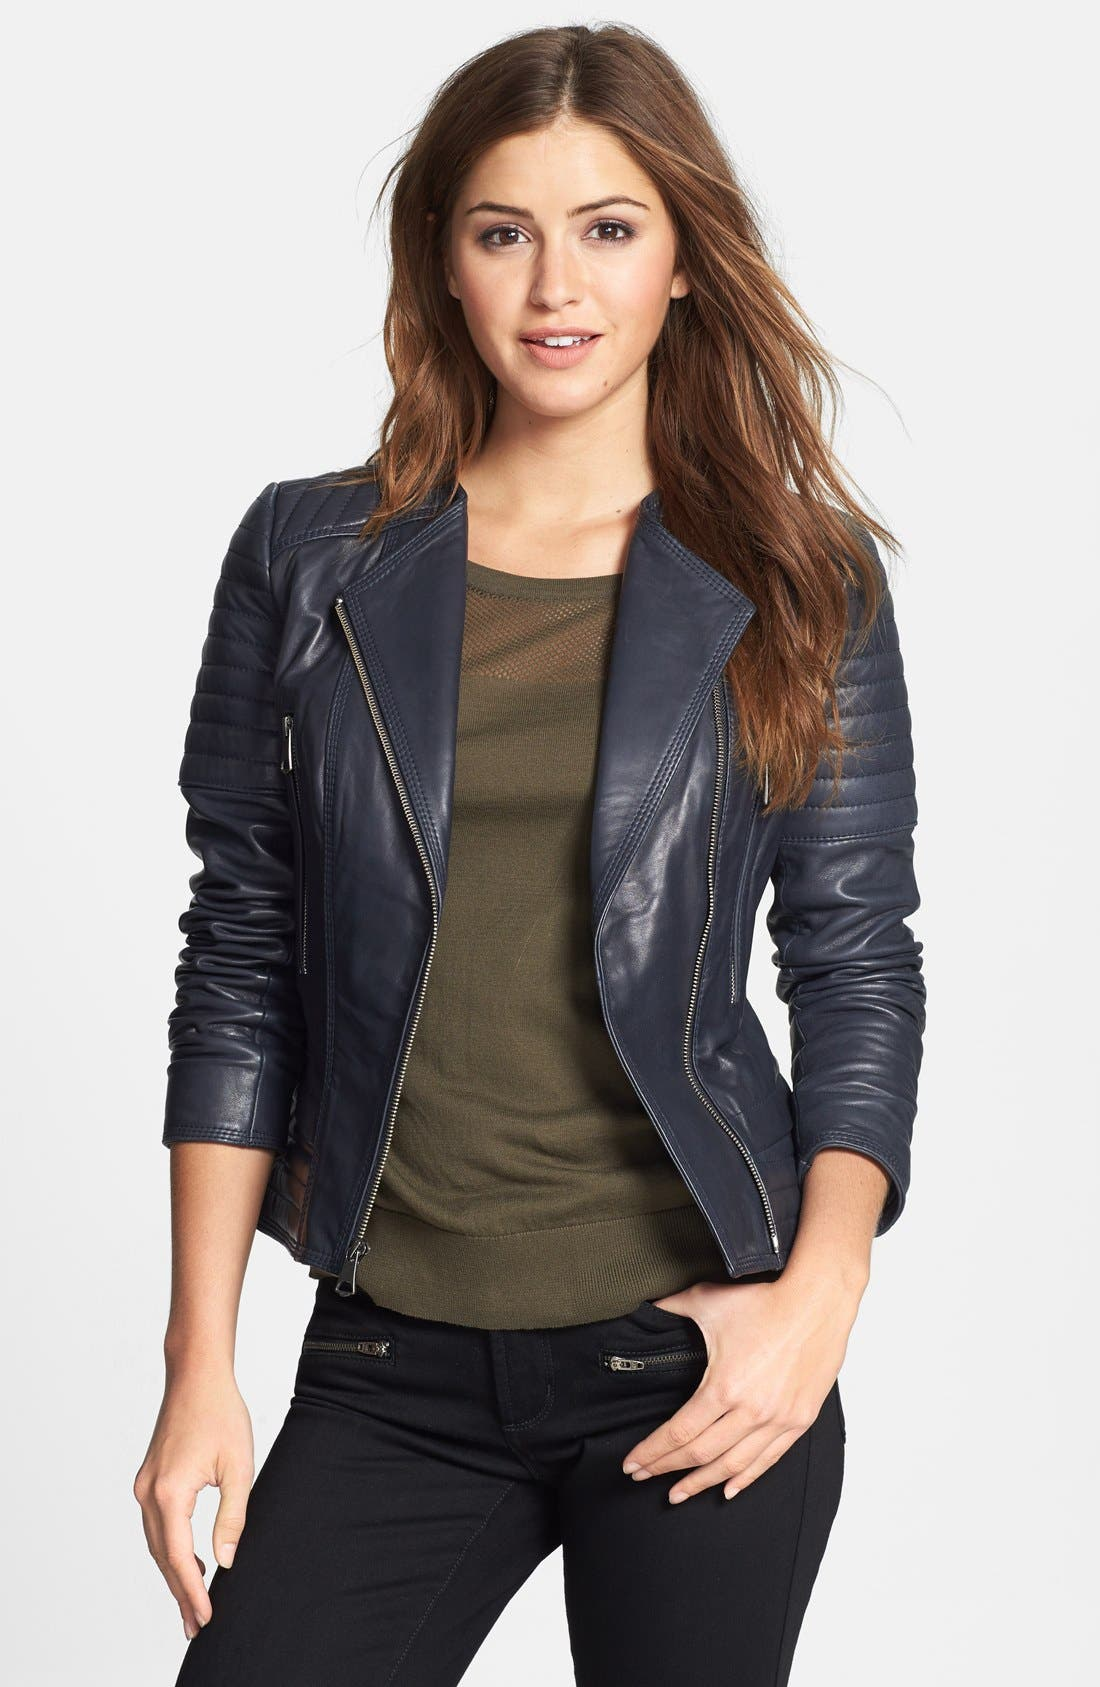 Alternate Image 1 Selected - Marc New York Channel Quilt Leather Moto Jacket